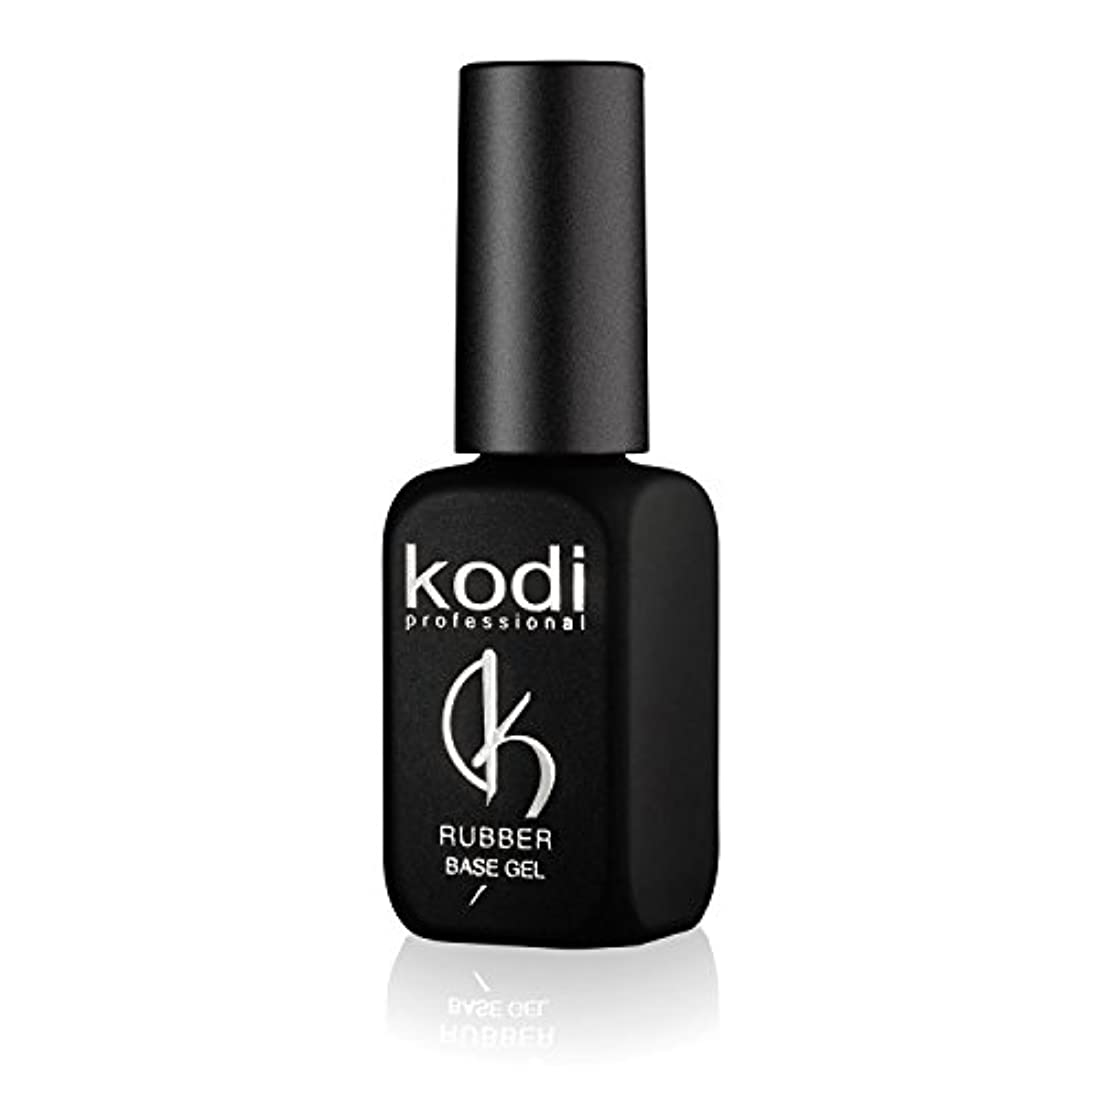 Professional Rubber Base Gel By Kodi | 12ml 0.42 oz | Soak Off, Polish Fingernails Coat Gel | For Long Lasting...